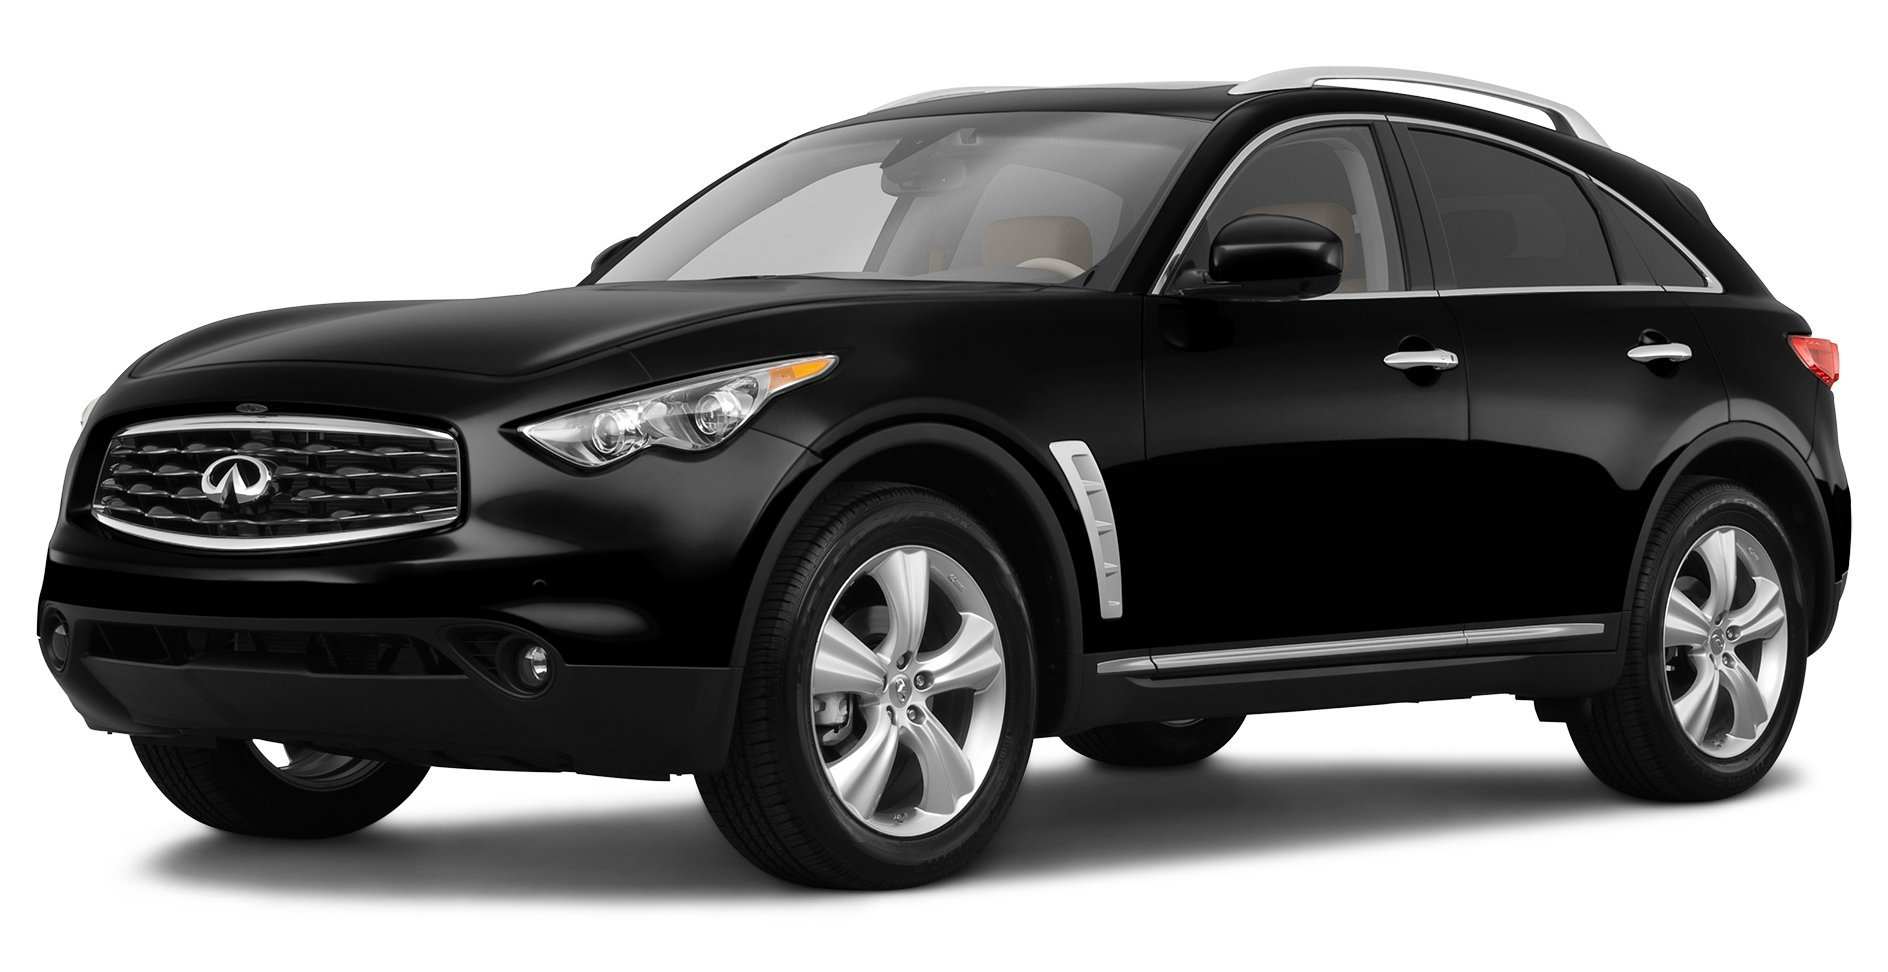 Service manual 2011 infiniti m service manual on a relays for South motors infiniti service